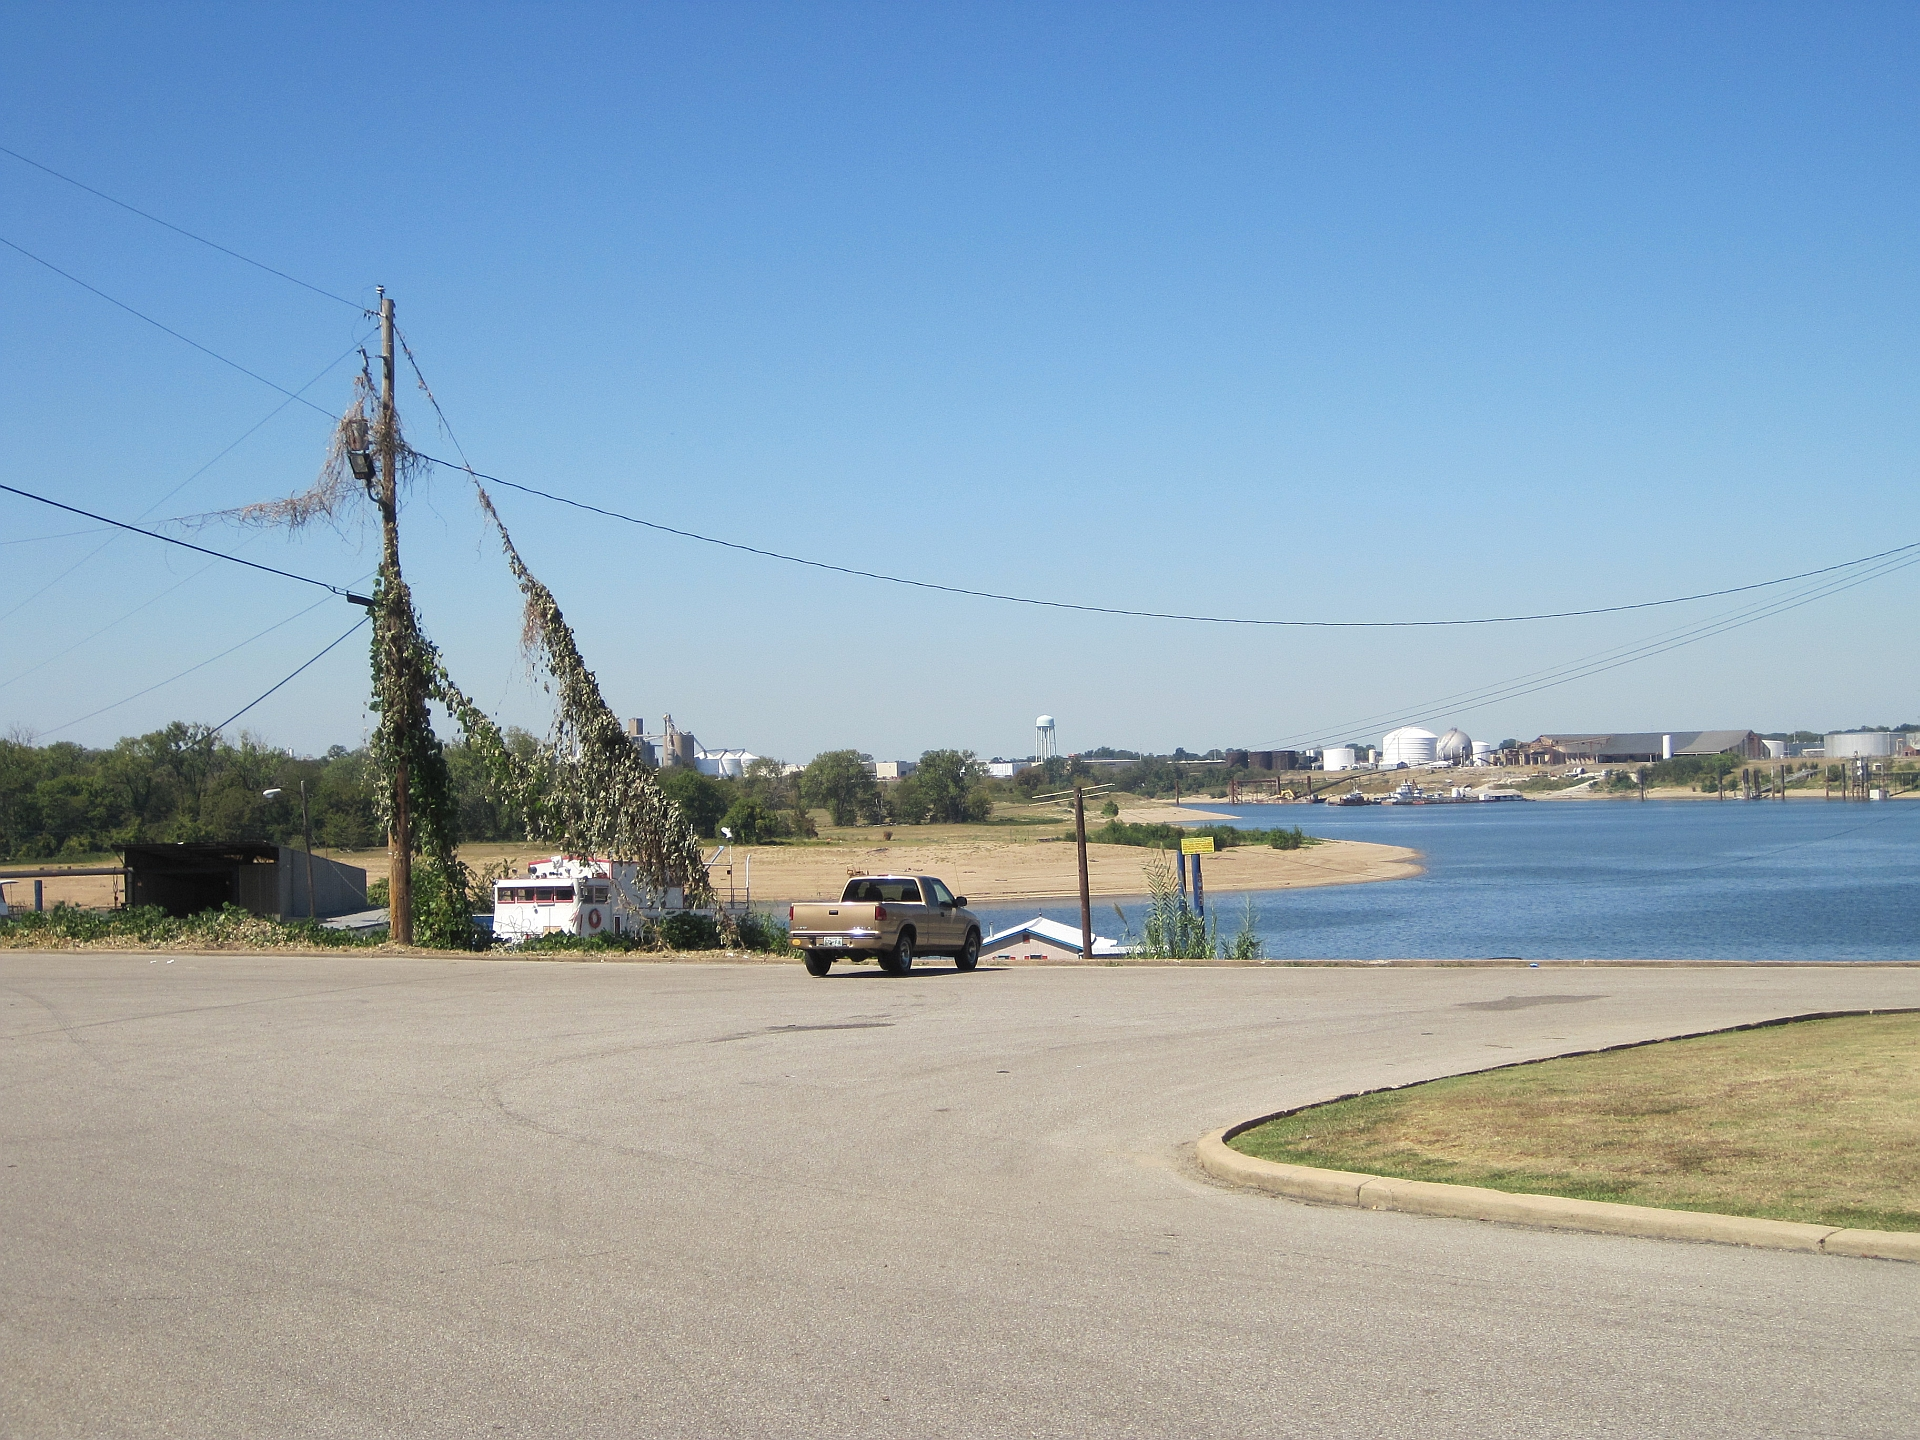 File:Dr Martin Luther King Jr Park I-55 Exit 9 W Mallory Ave Memphis ...